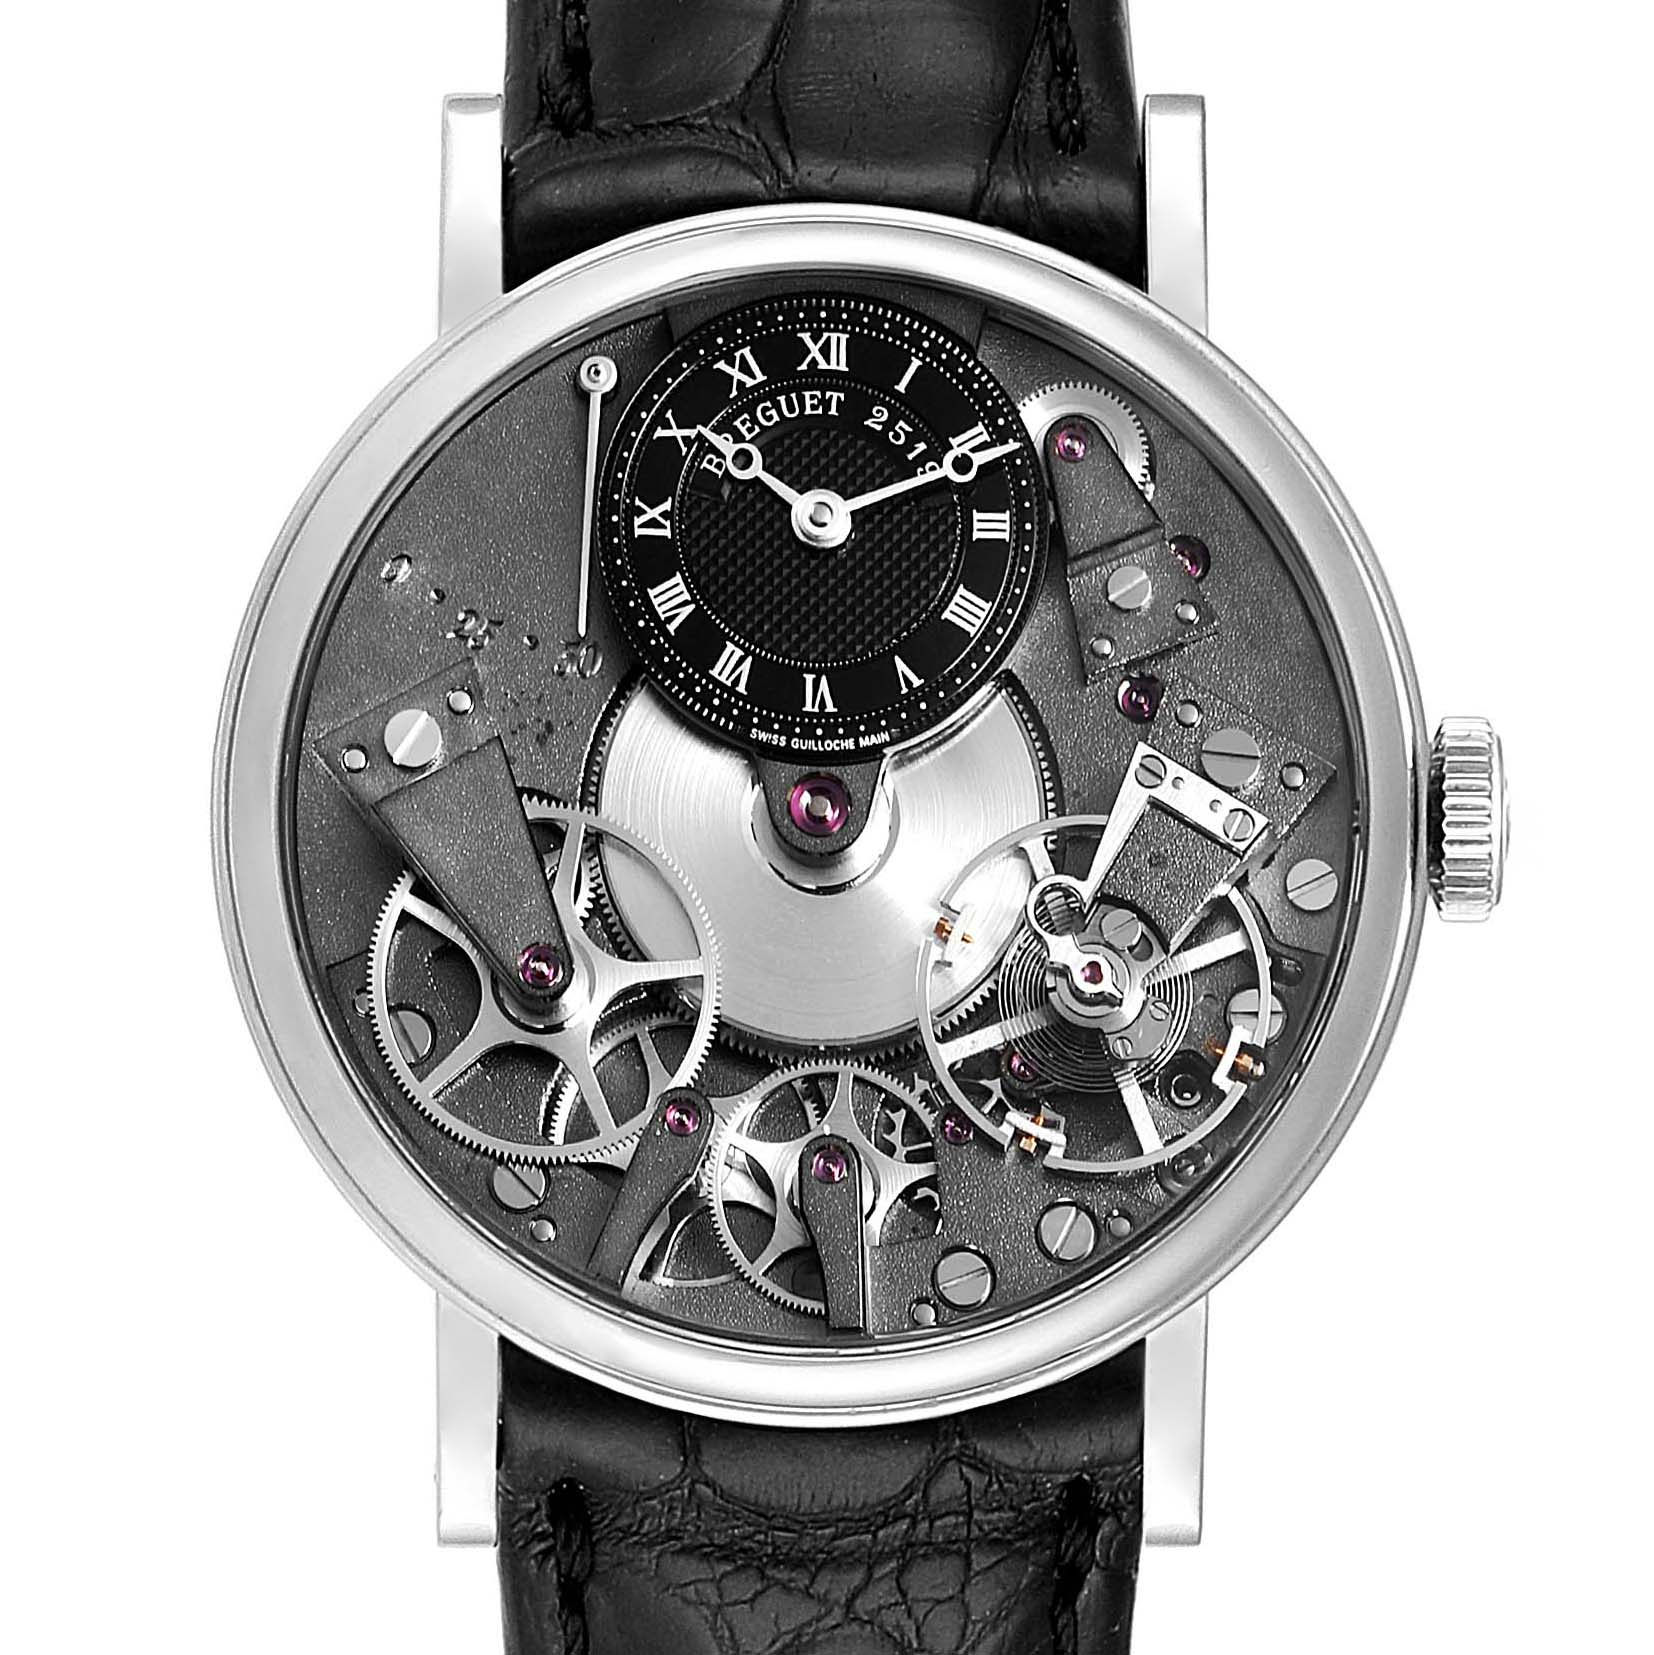 Breguet Tradition Skeleton Dial White Gold Manual Wind Mens Watch 7027BB